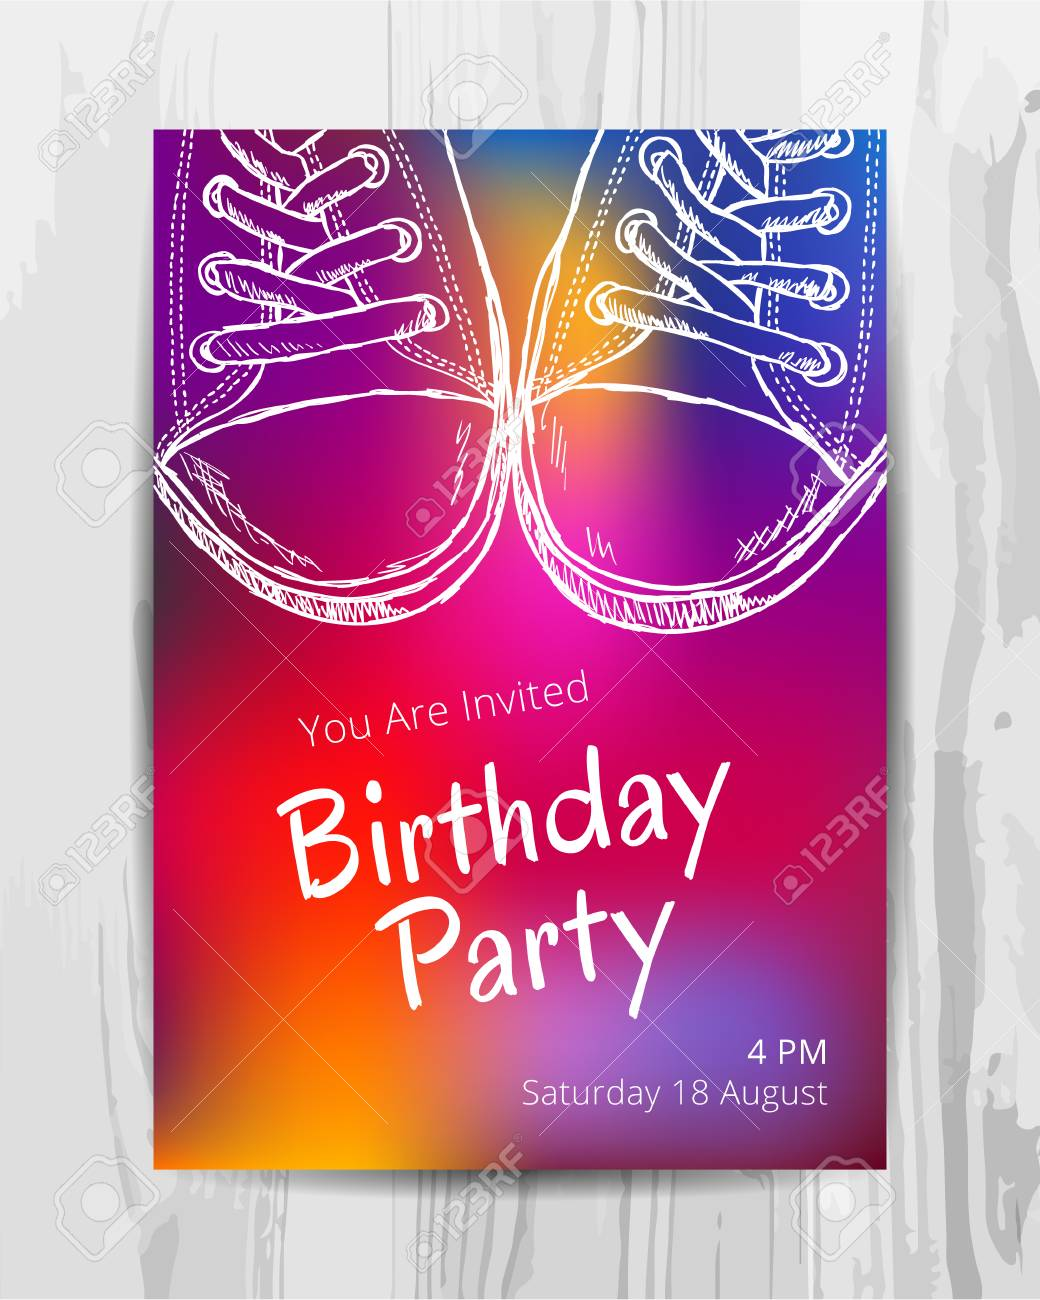 Birthday Party Invitation Card Multicolored Teenage Party Flyer